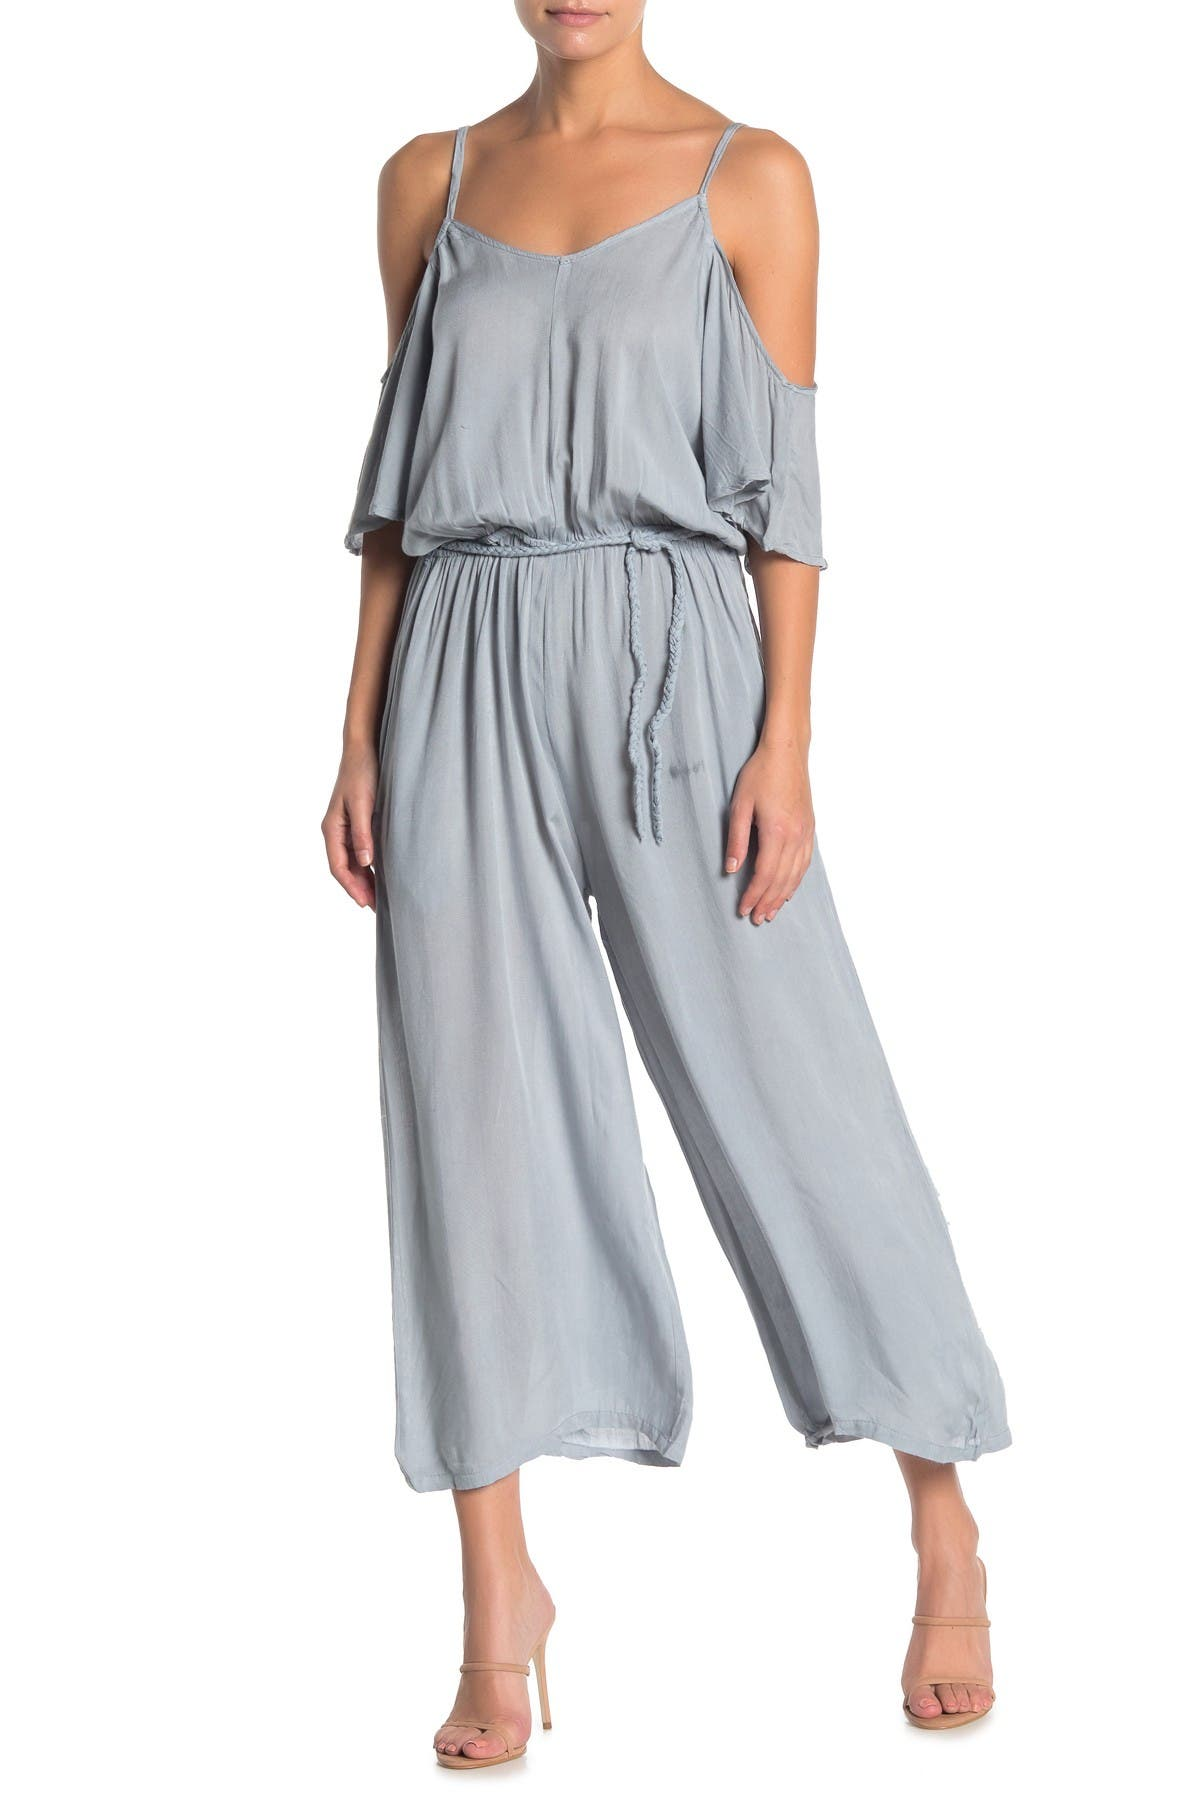 Image of BOHO ME Cold Shoulder Jumpsuit